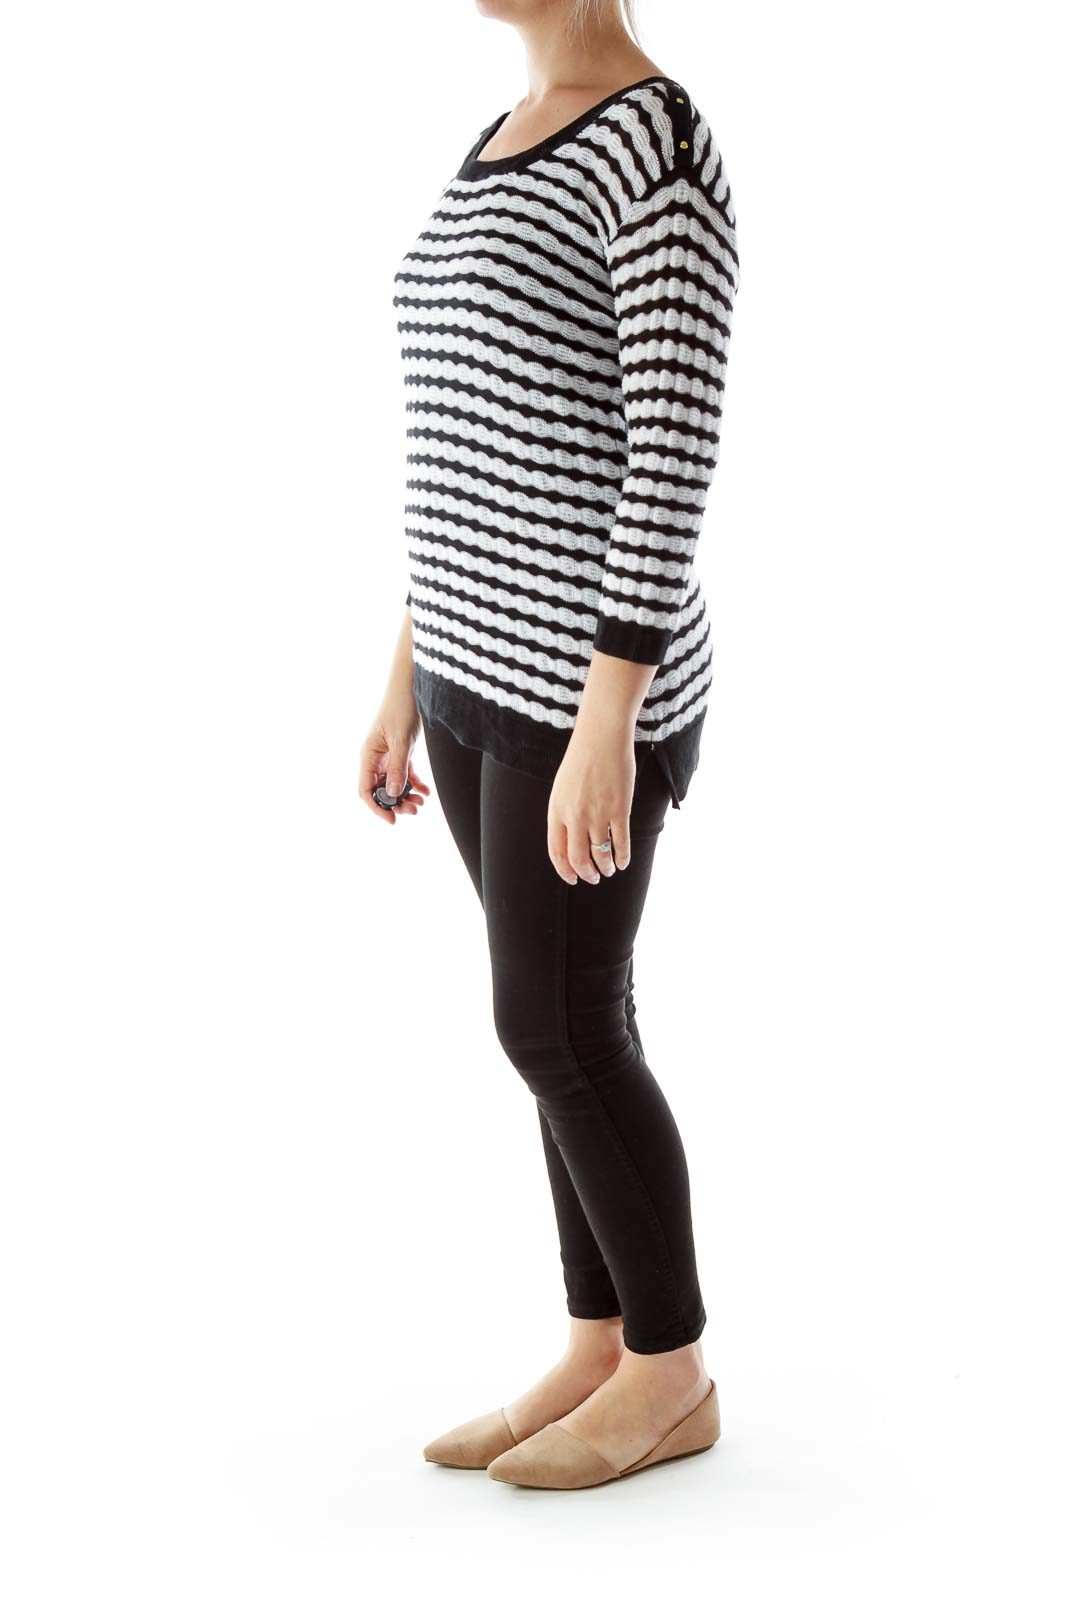 Black and White Knit Top